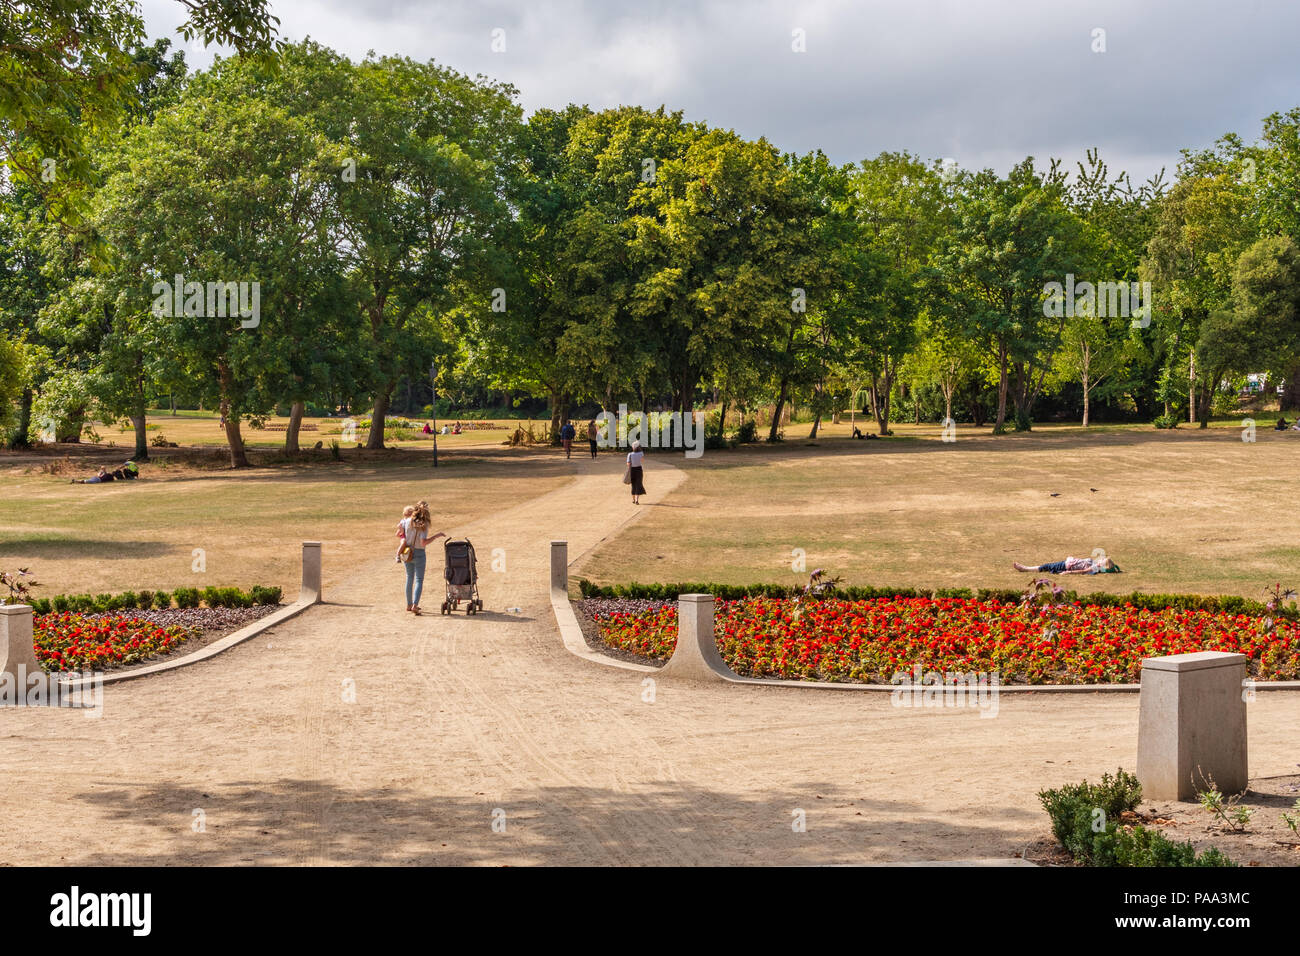 People are walking in a Dublin park on a hot summer day. - Stock Image